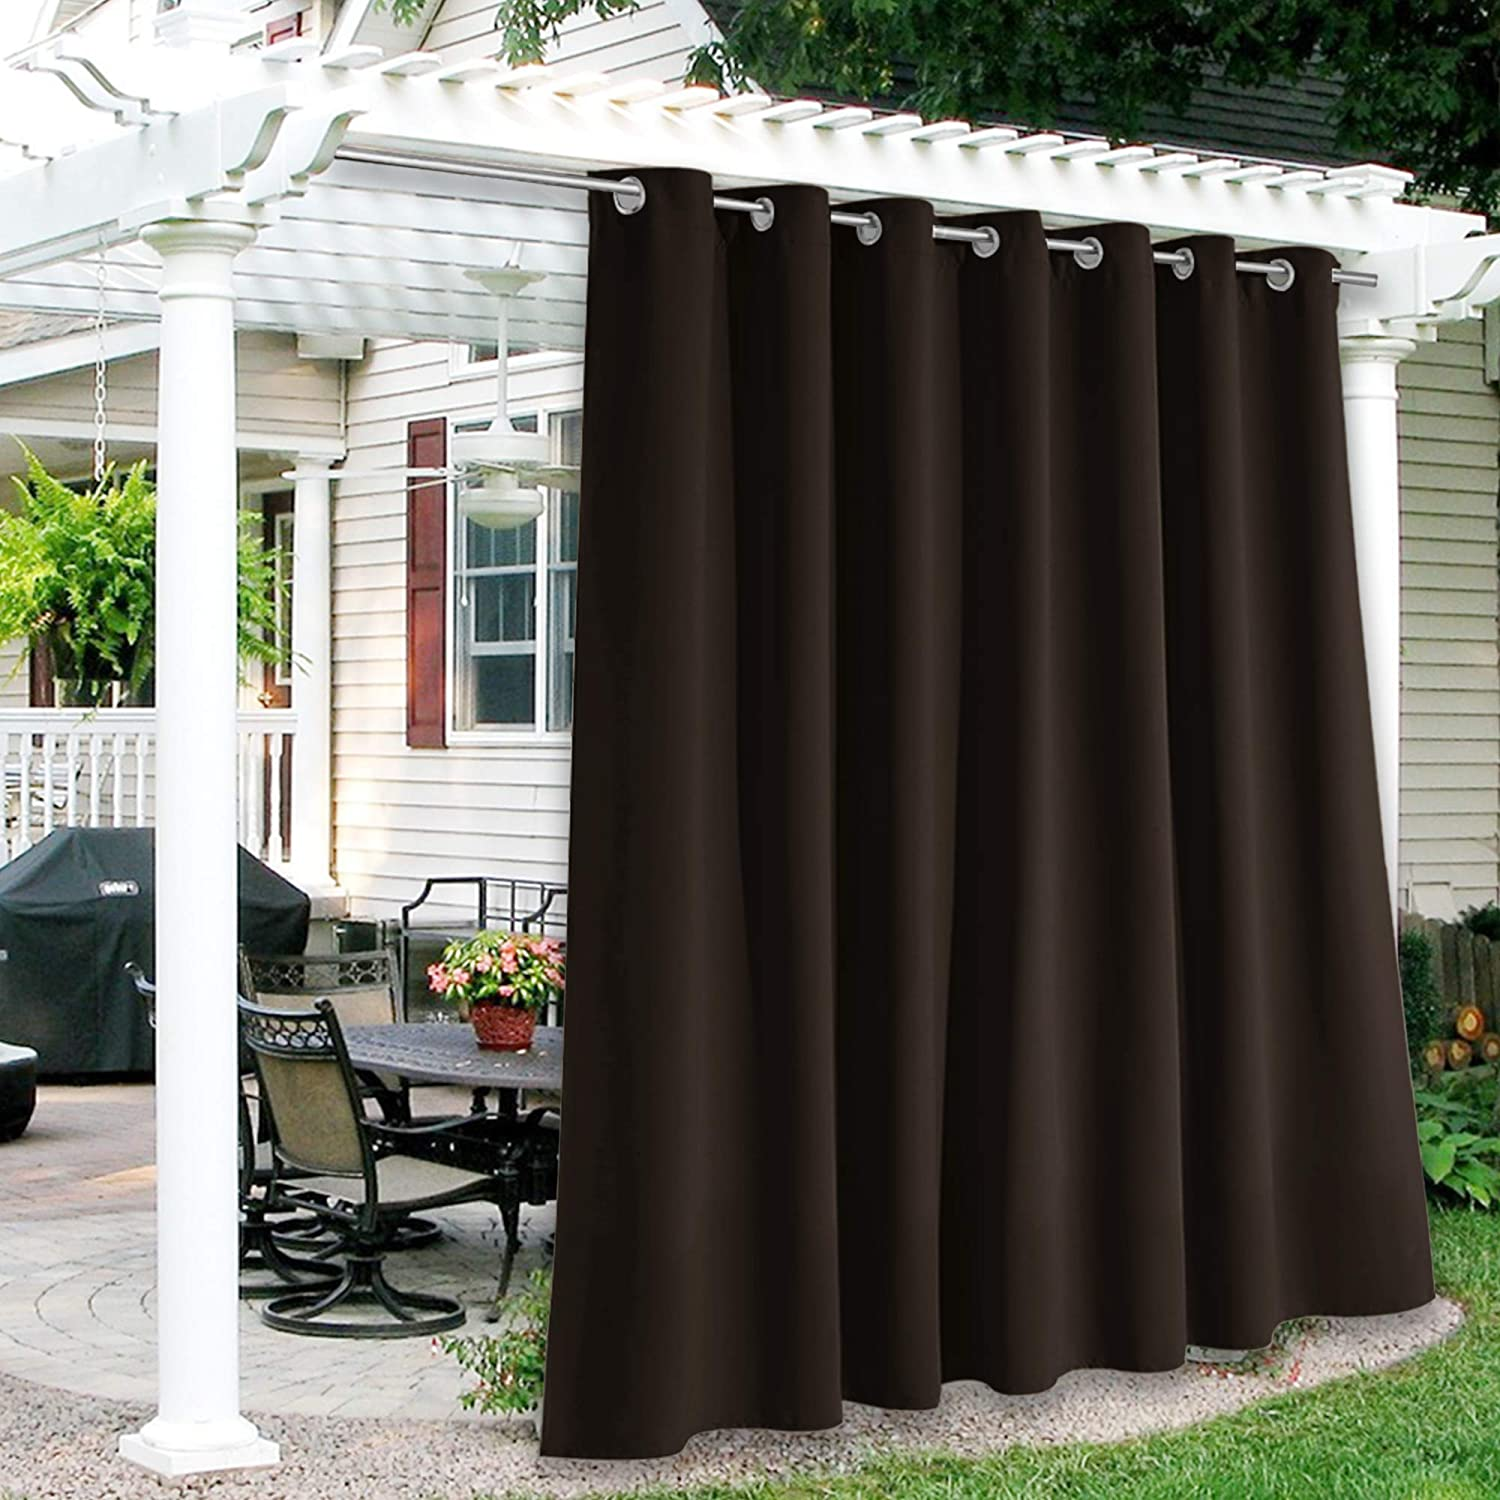 RYB HOME Porch Curtains Outdoor Farmhouse Drapes, Blackout Free Standing Outdoor Privacy Curtain for Indoor Door Blind / Living Room / Garden Lawn, Wide 100 x Long 84, 1 Panel, Brown